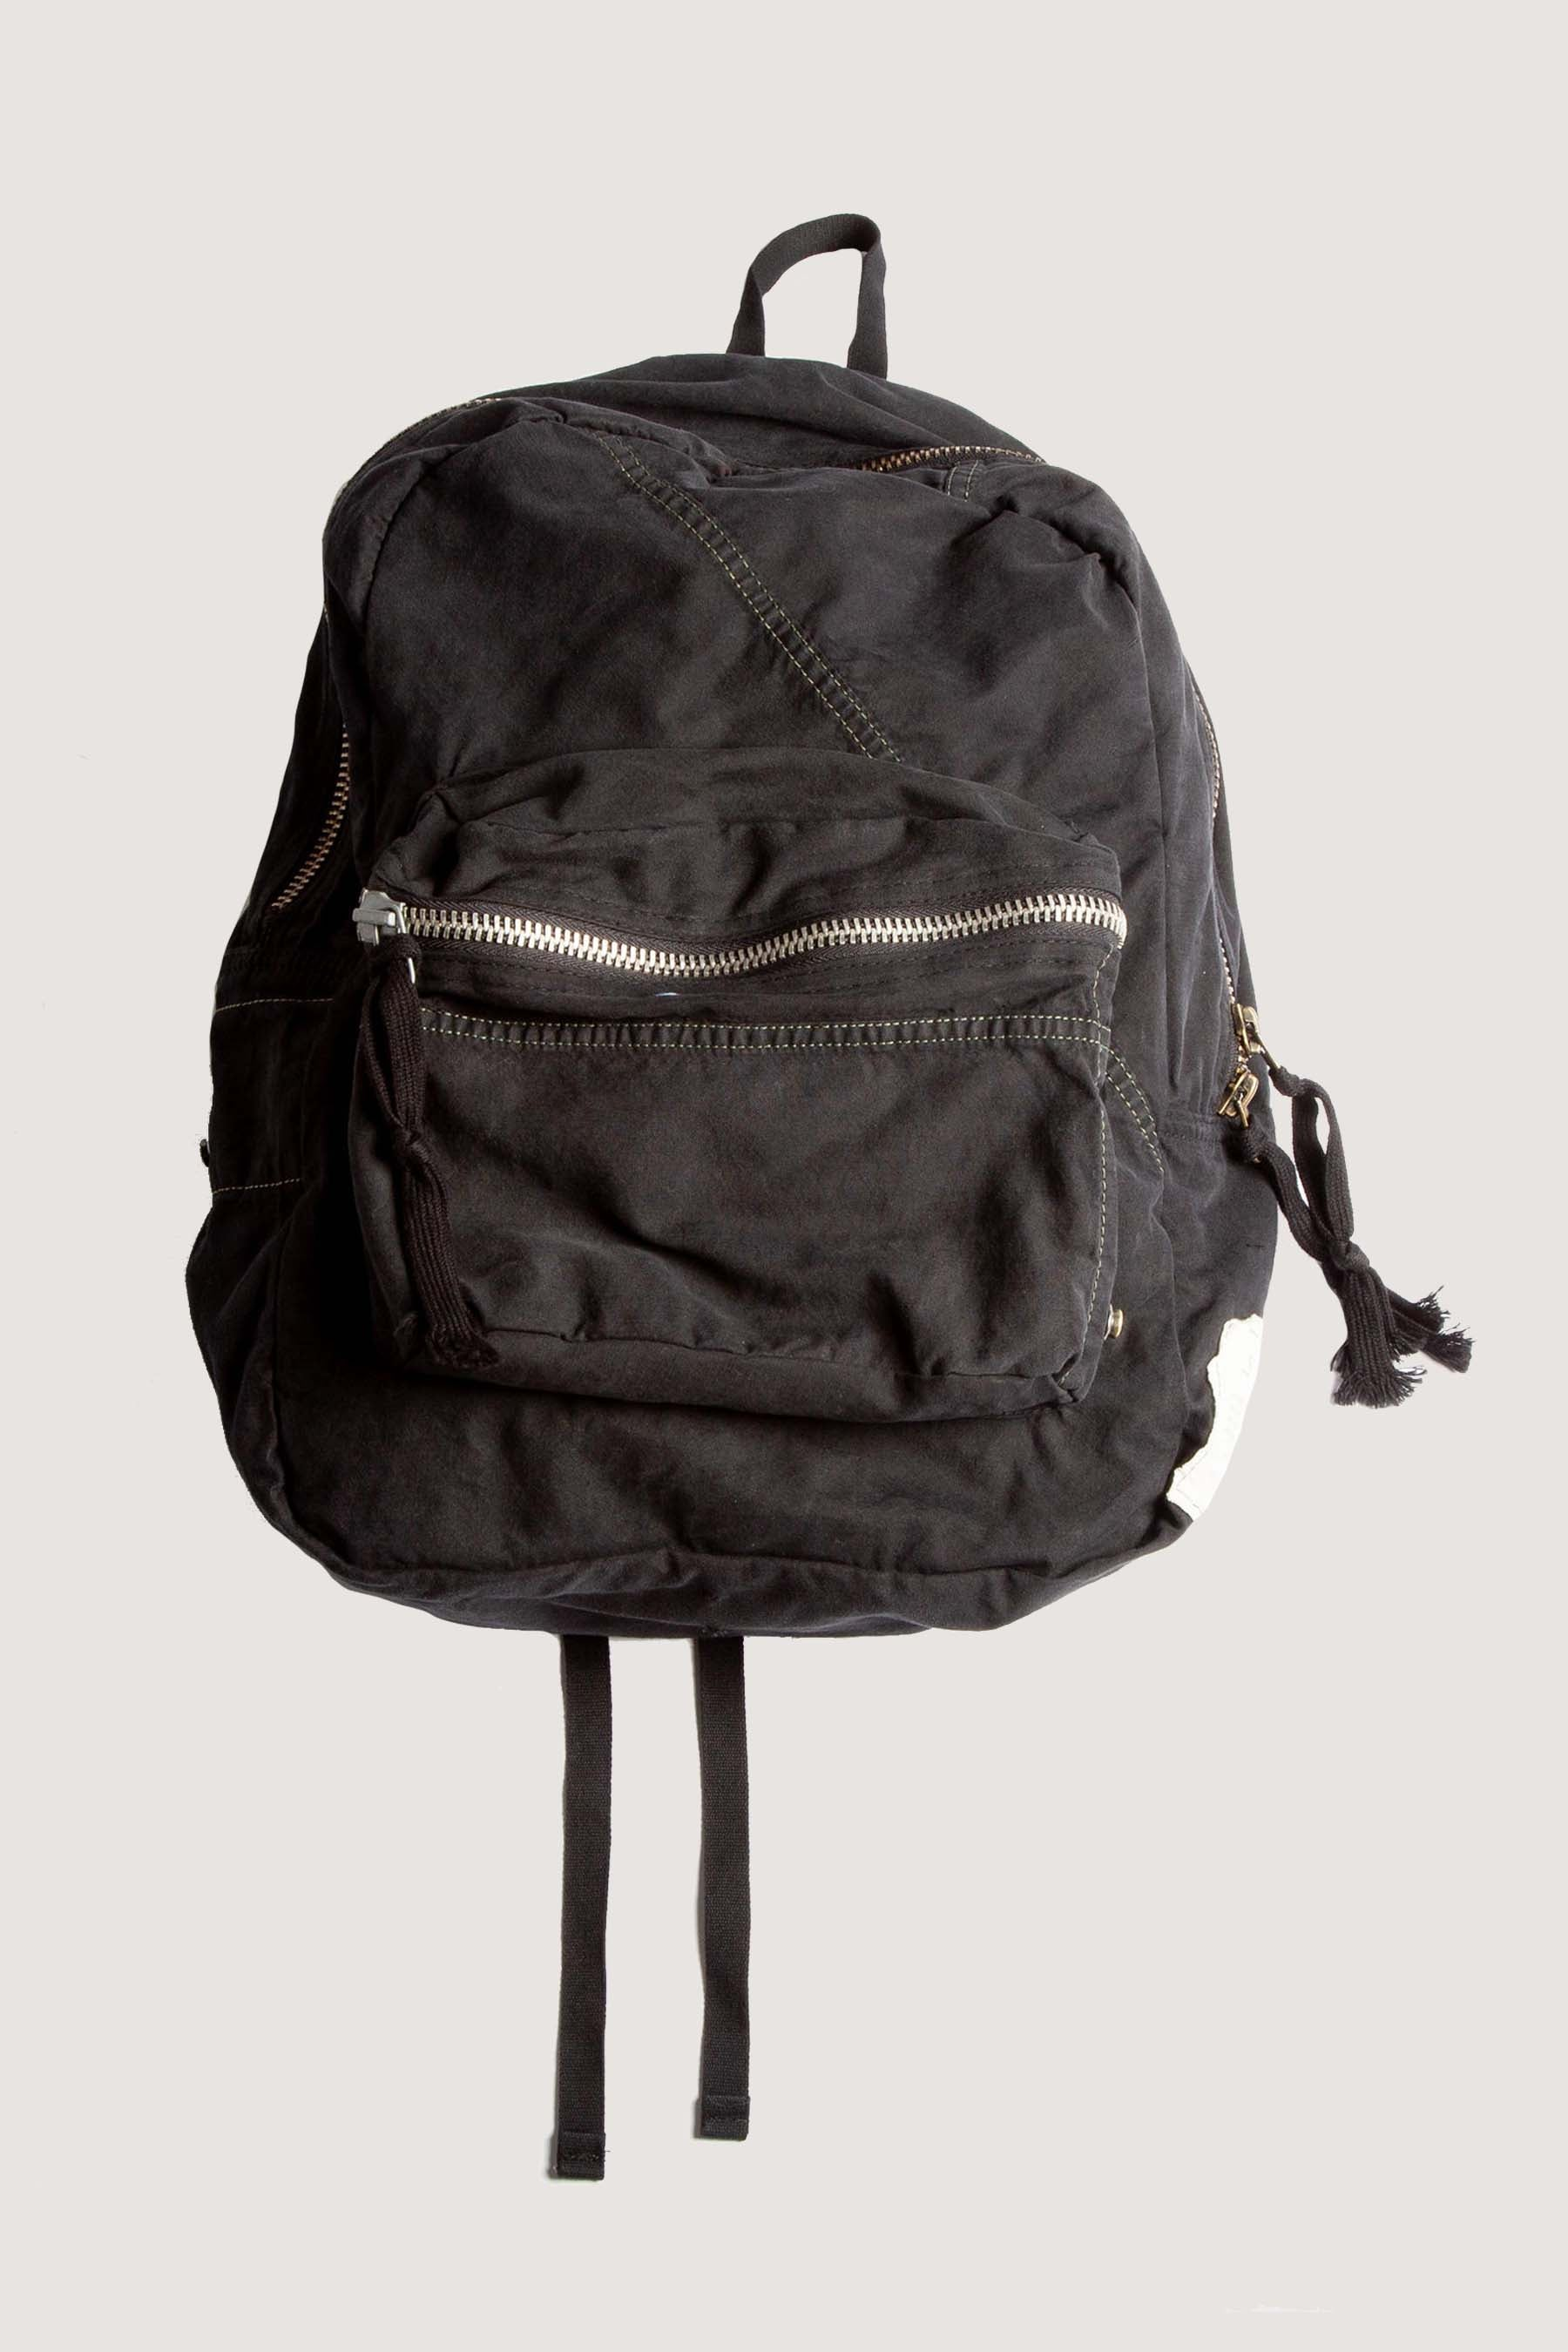 TENT SCRAPWORK BACKPACK - BLACK